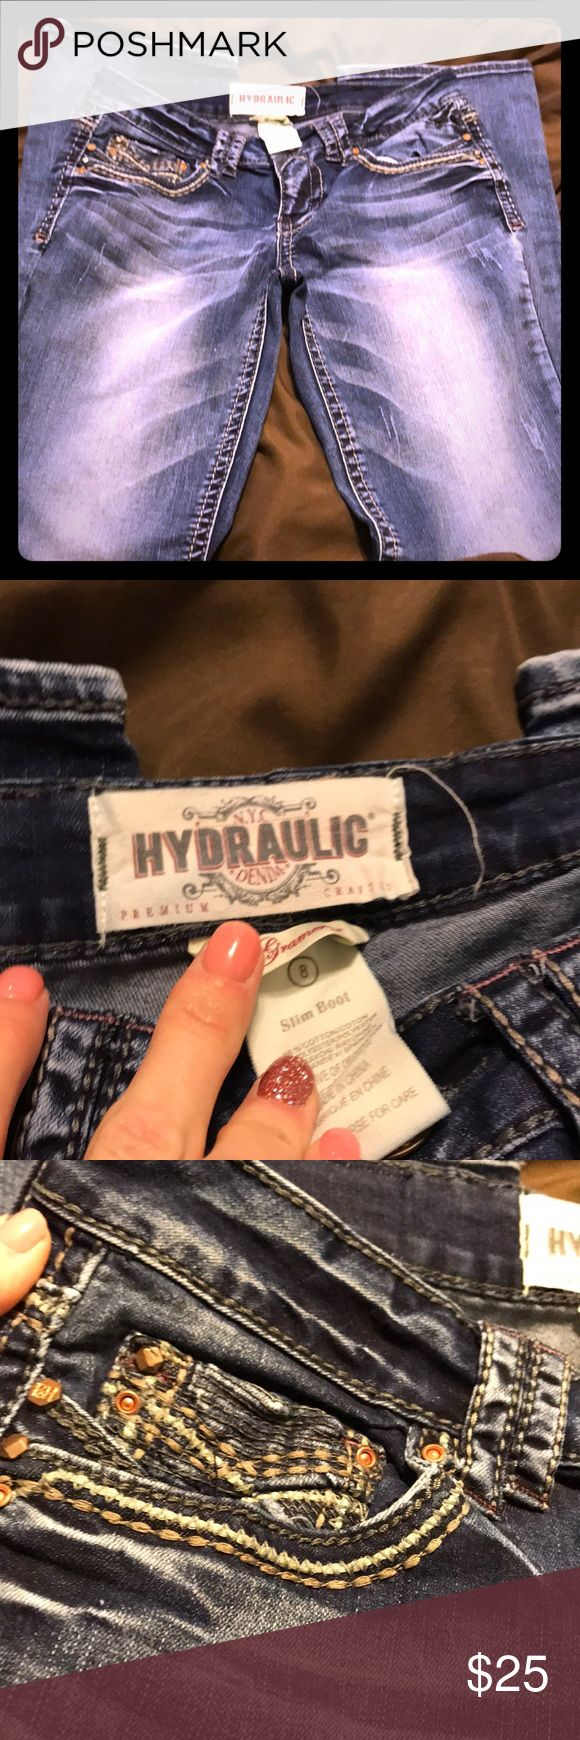 Hydraulic Jeans Slim Boot Size 8 Hydraulic Jeans Slim Boot Size 8. Gramercy. Only worn 2-3 times  like new Hydraulic Jeans Boot Cut